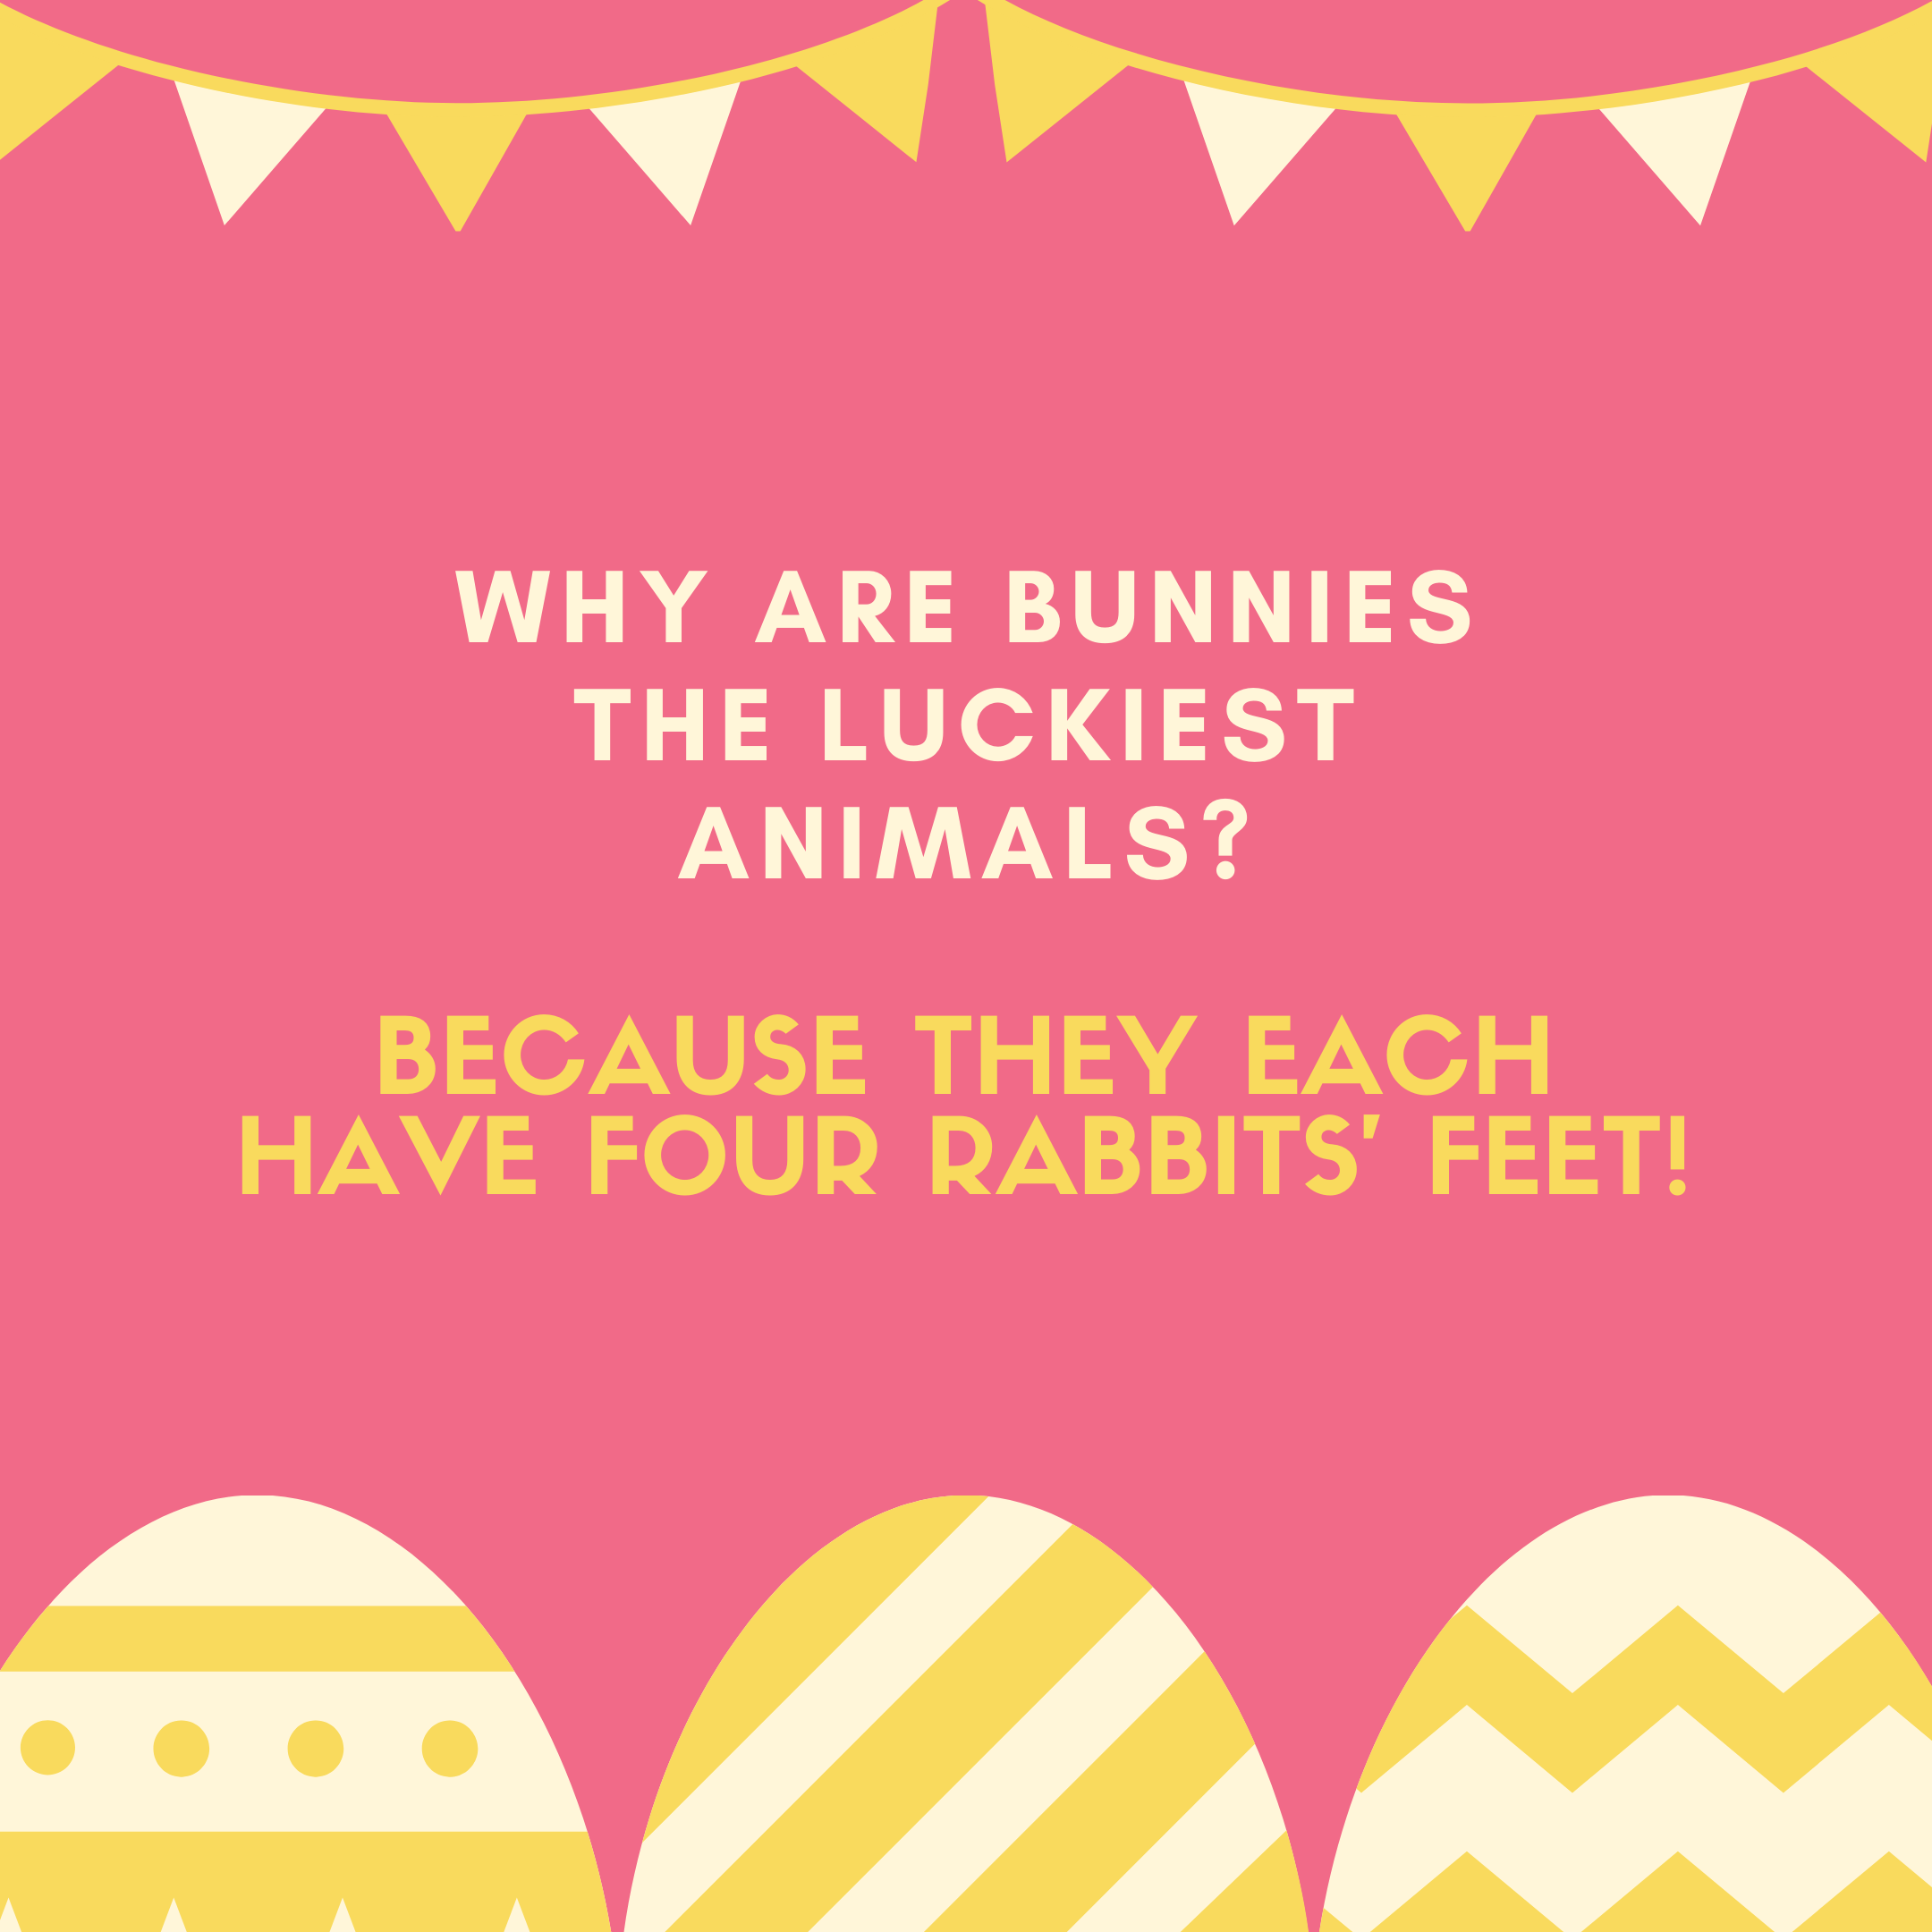 Because they each have four rabbits' feet!